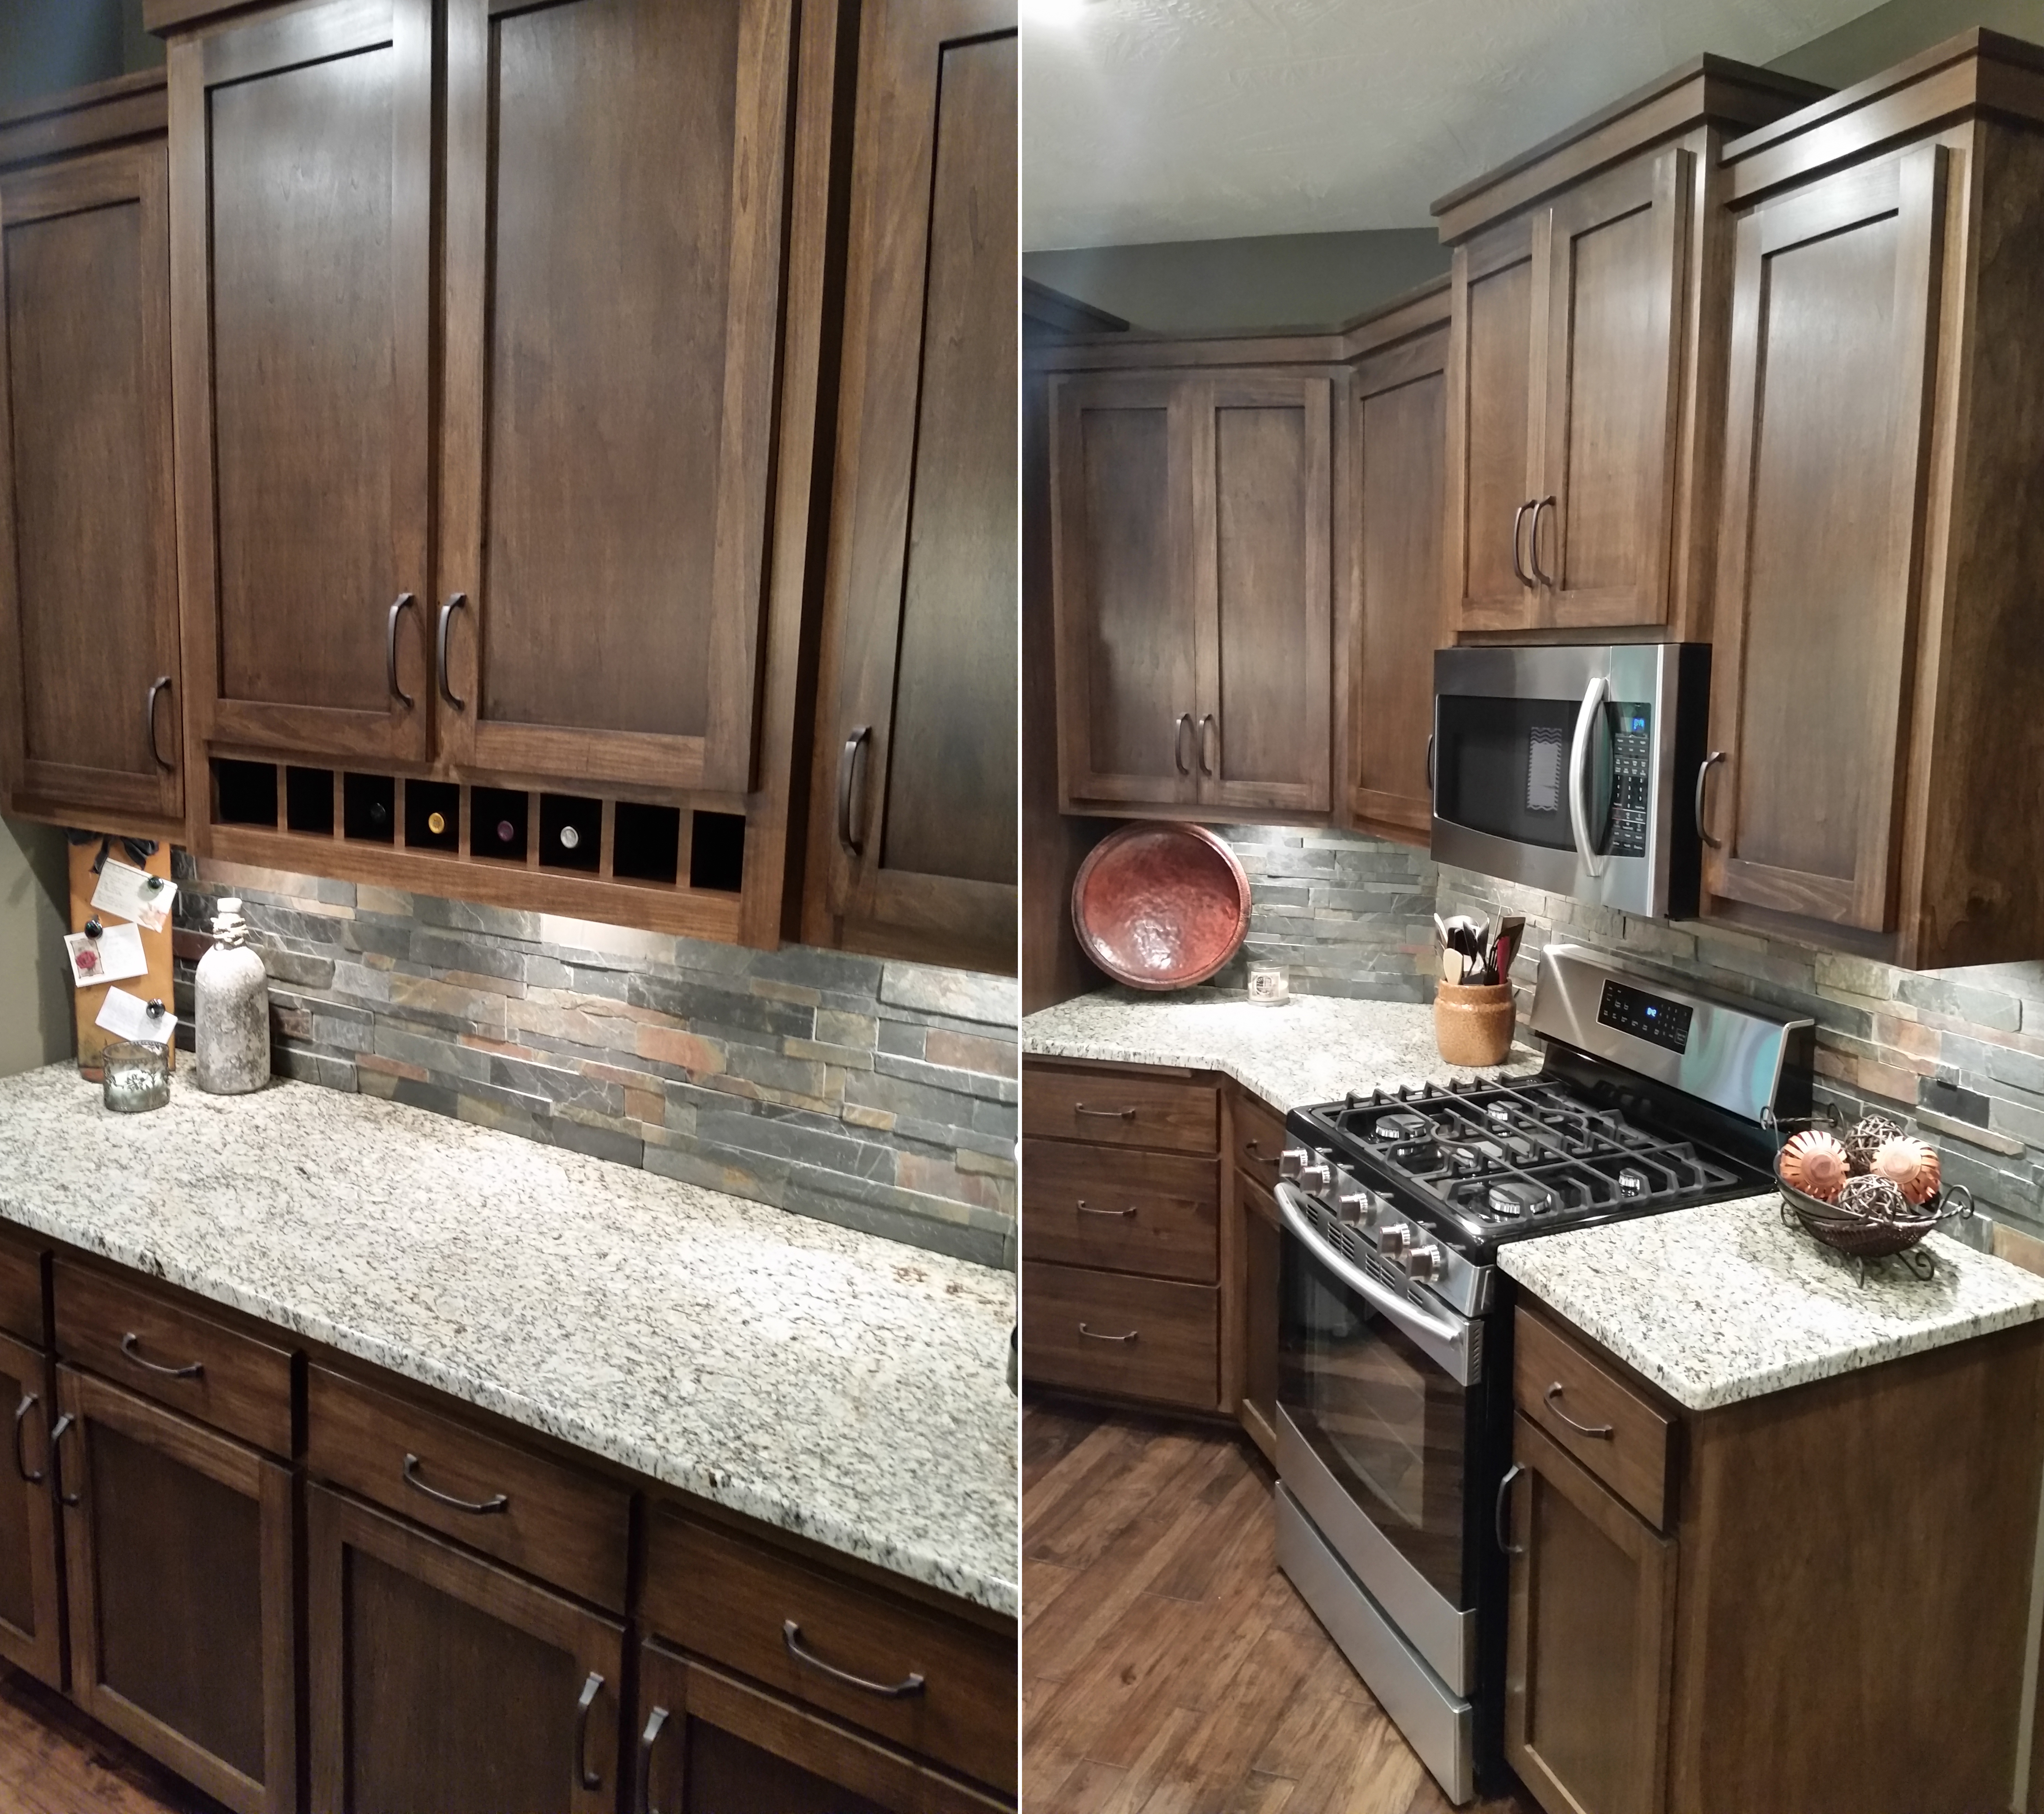 Thanks Again Steve For Sharing Your Renovation With Us That Kitchen Is Definitely Something To Be Proud Of